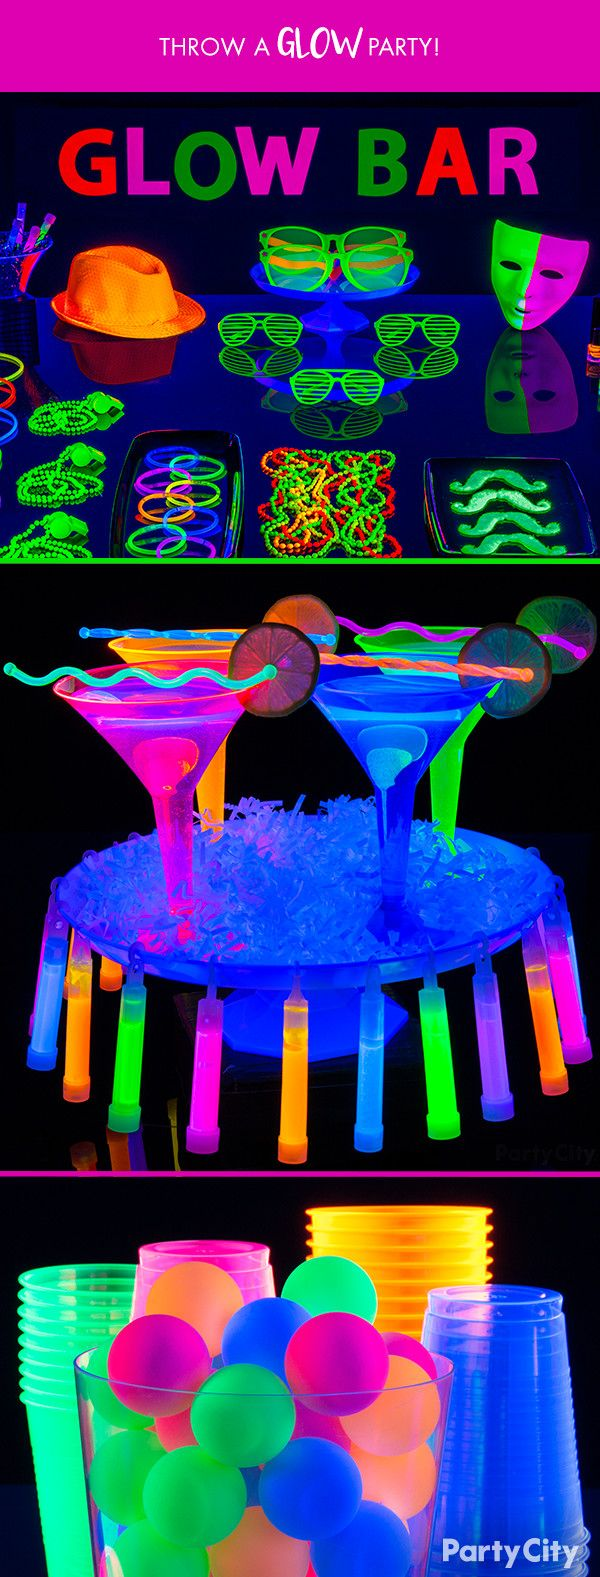 When the lights go out, the party's on.  Let it glow all summer with glow sticks…